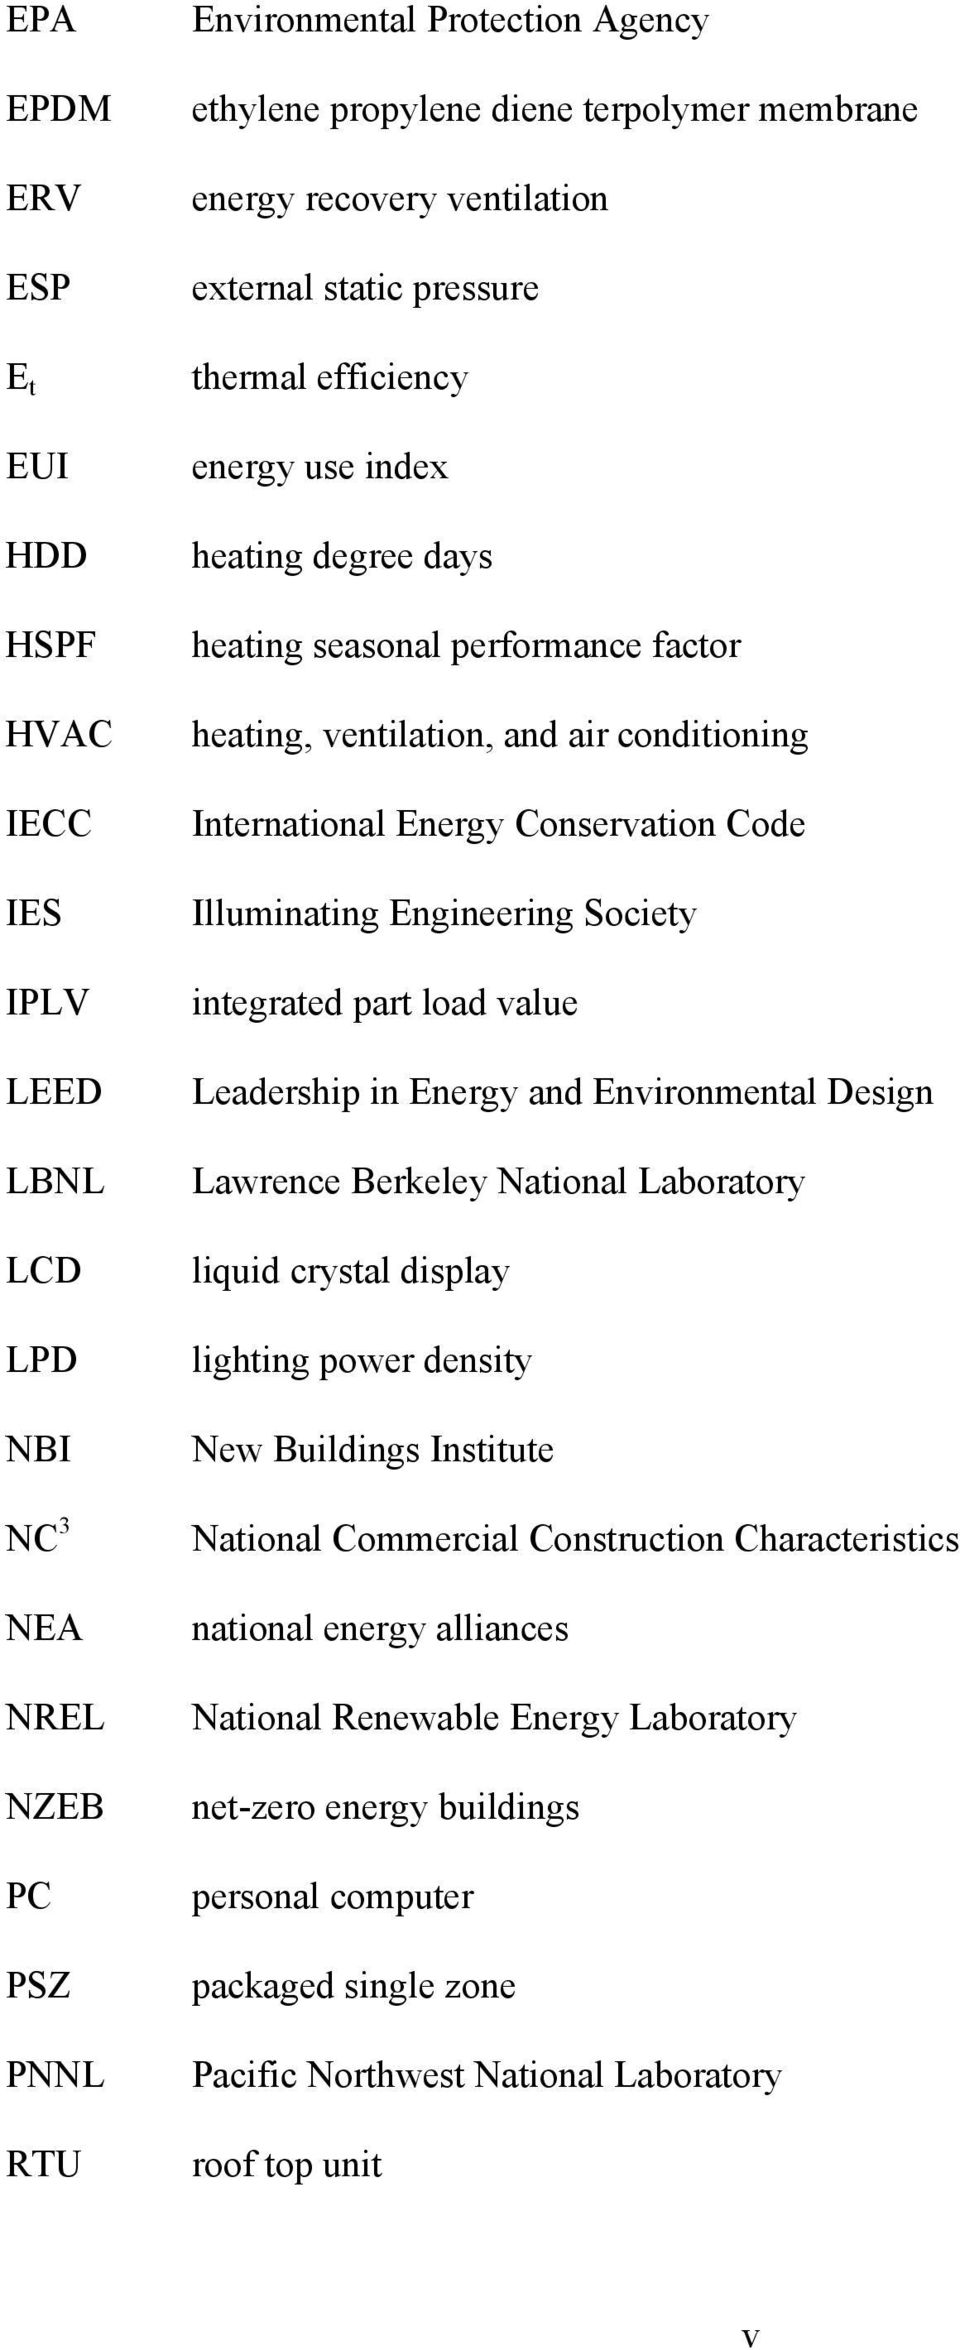 Energy Conservation Code Illuminating Engineering Society integrated part load value Leadership in Energy and Environmental Design Lawrence Berkeley National Laboratory liquid crystal display